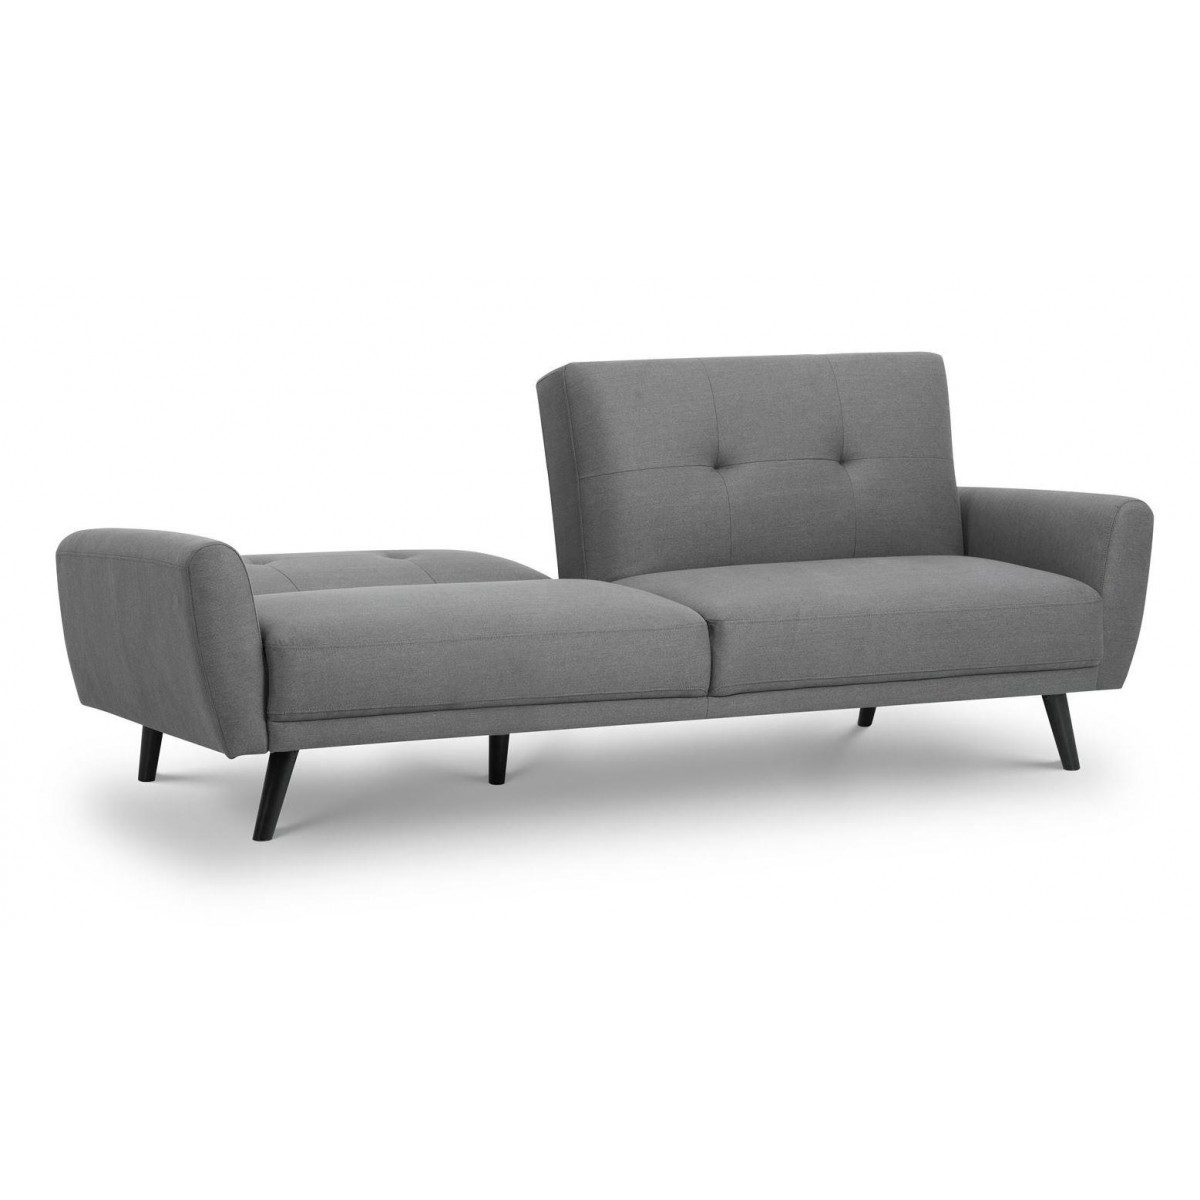 Modern Home Monza Fabric Sofa Bed Suite Free Next Day Delivery